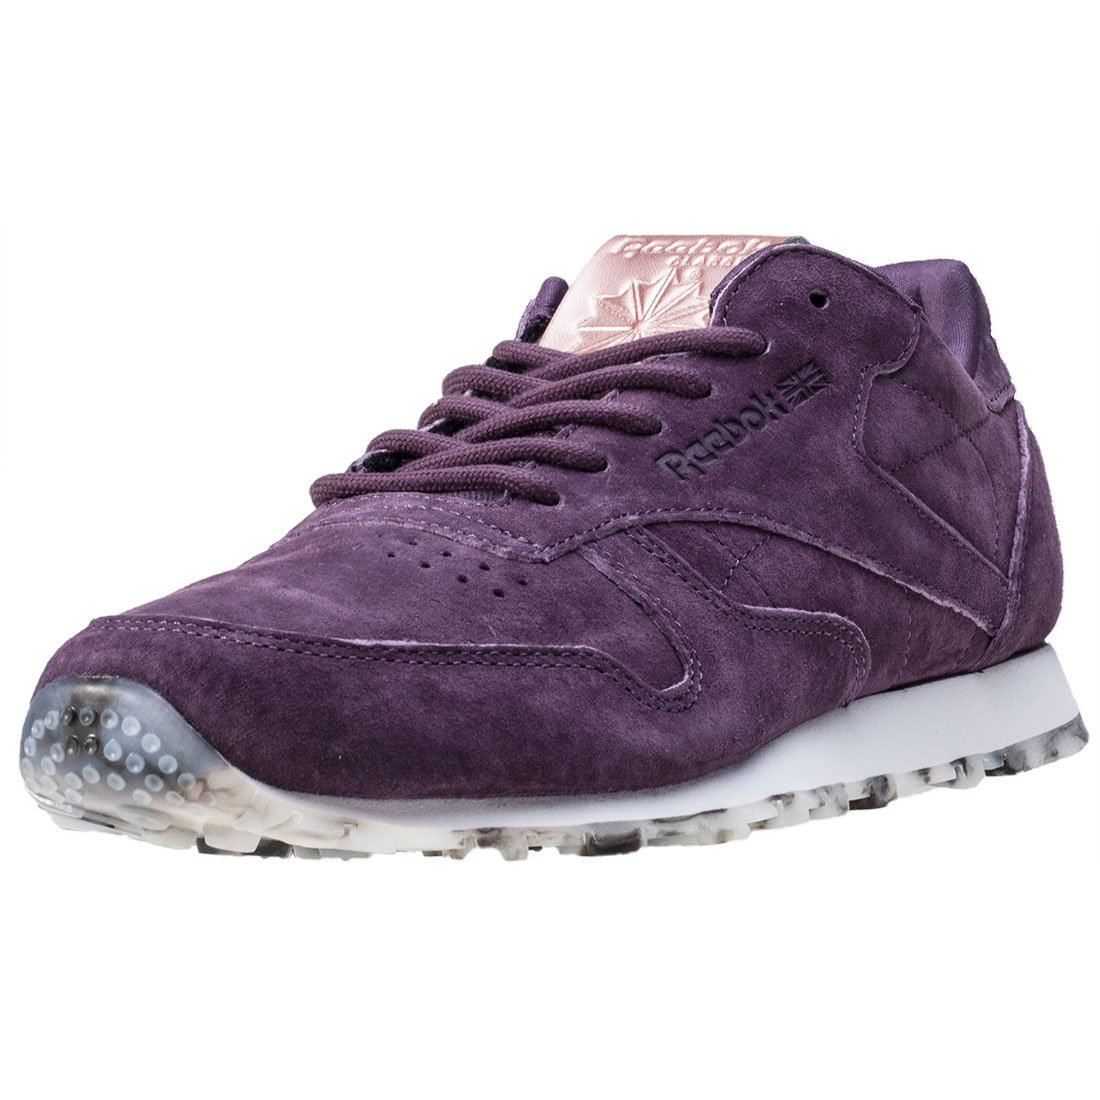 Reebok Damen Classic Leather Shimmer Bd1520 Turnschuhe